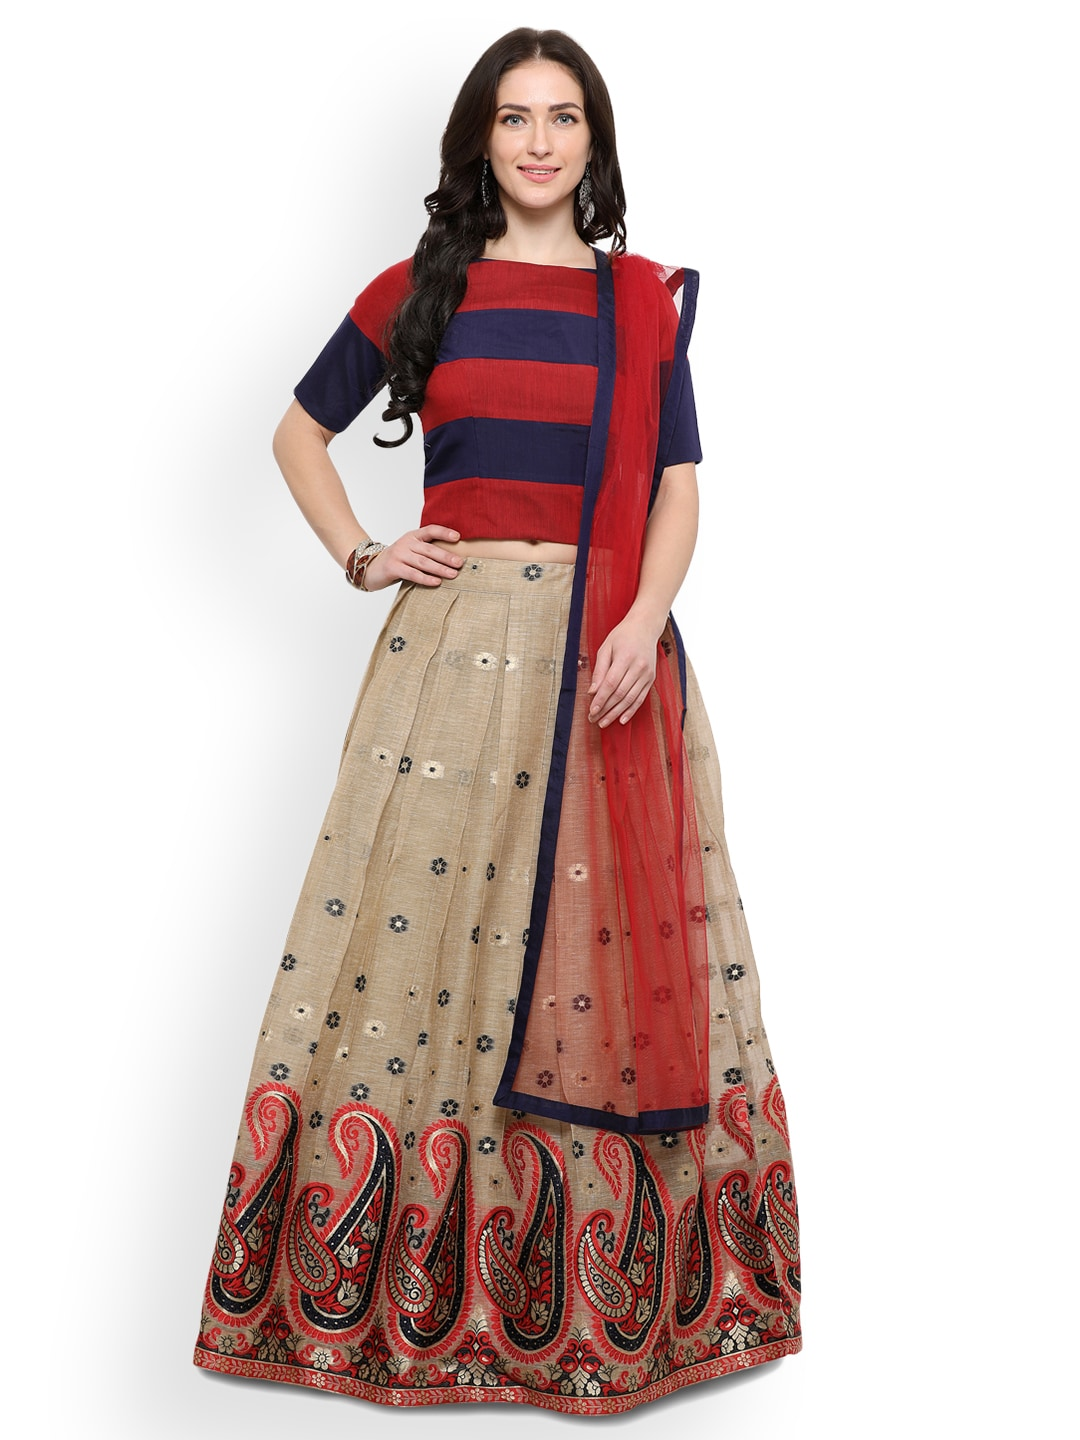 Inddus Cream-Coloured & Red Semi-Stitched Lehenga & Unstitched Blouse With Dupatta image